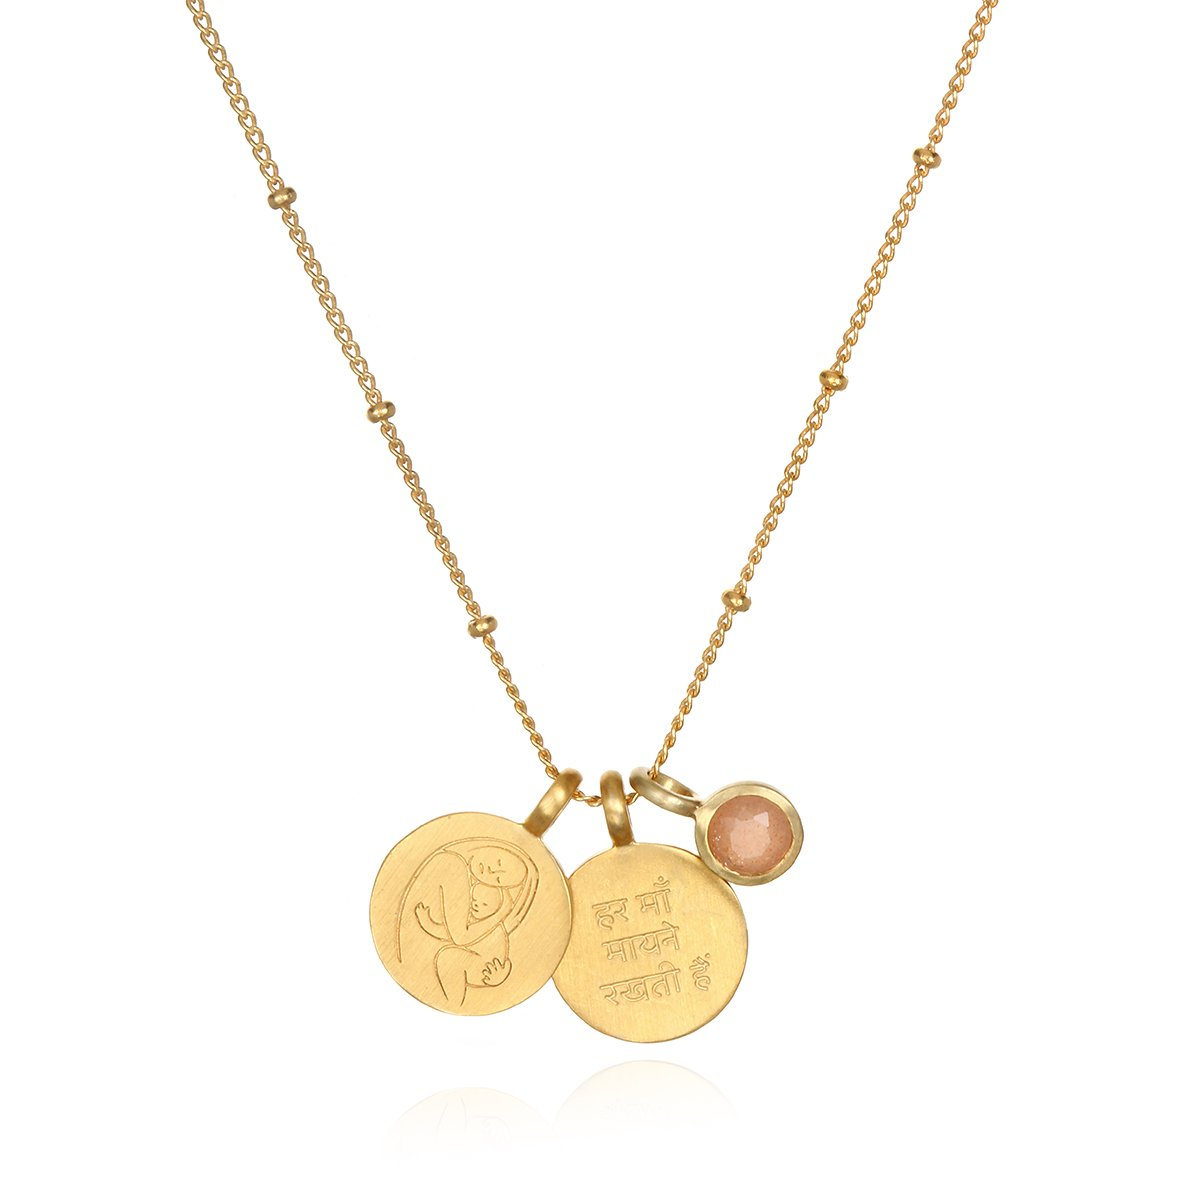 Mother's Love Necklace, $109 @satyajewelry.com - For every piece sold, Satya Jewelry will donate $50 to Every Mother Counts to support its mission.